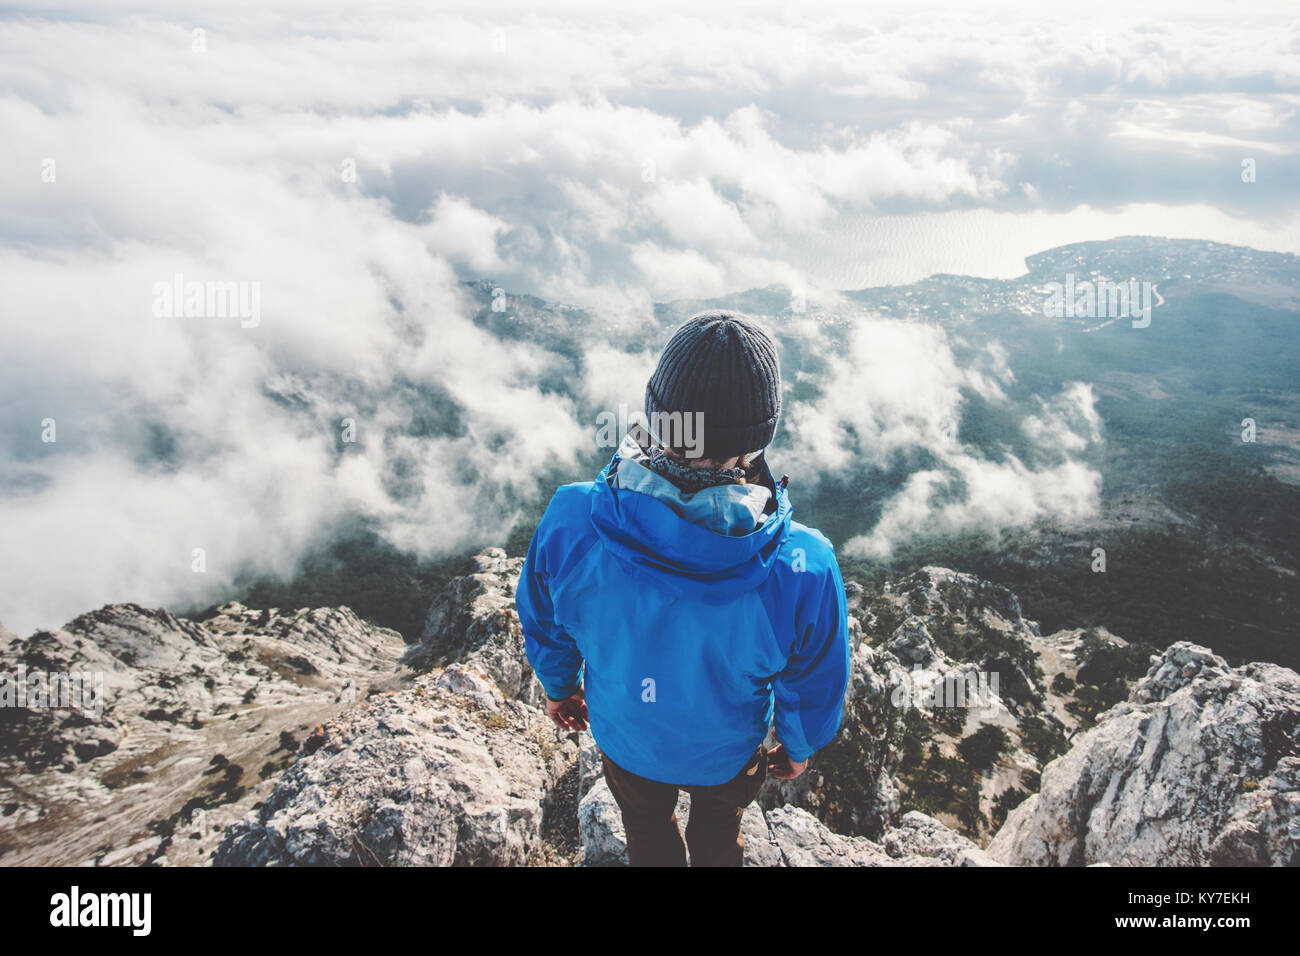 Man on mountain cliff enjoying aerial view over clouds alone Travel Lifestyle concept adventure active vacations - Stock Image